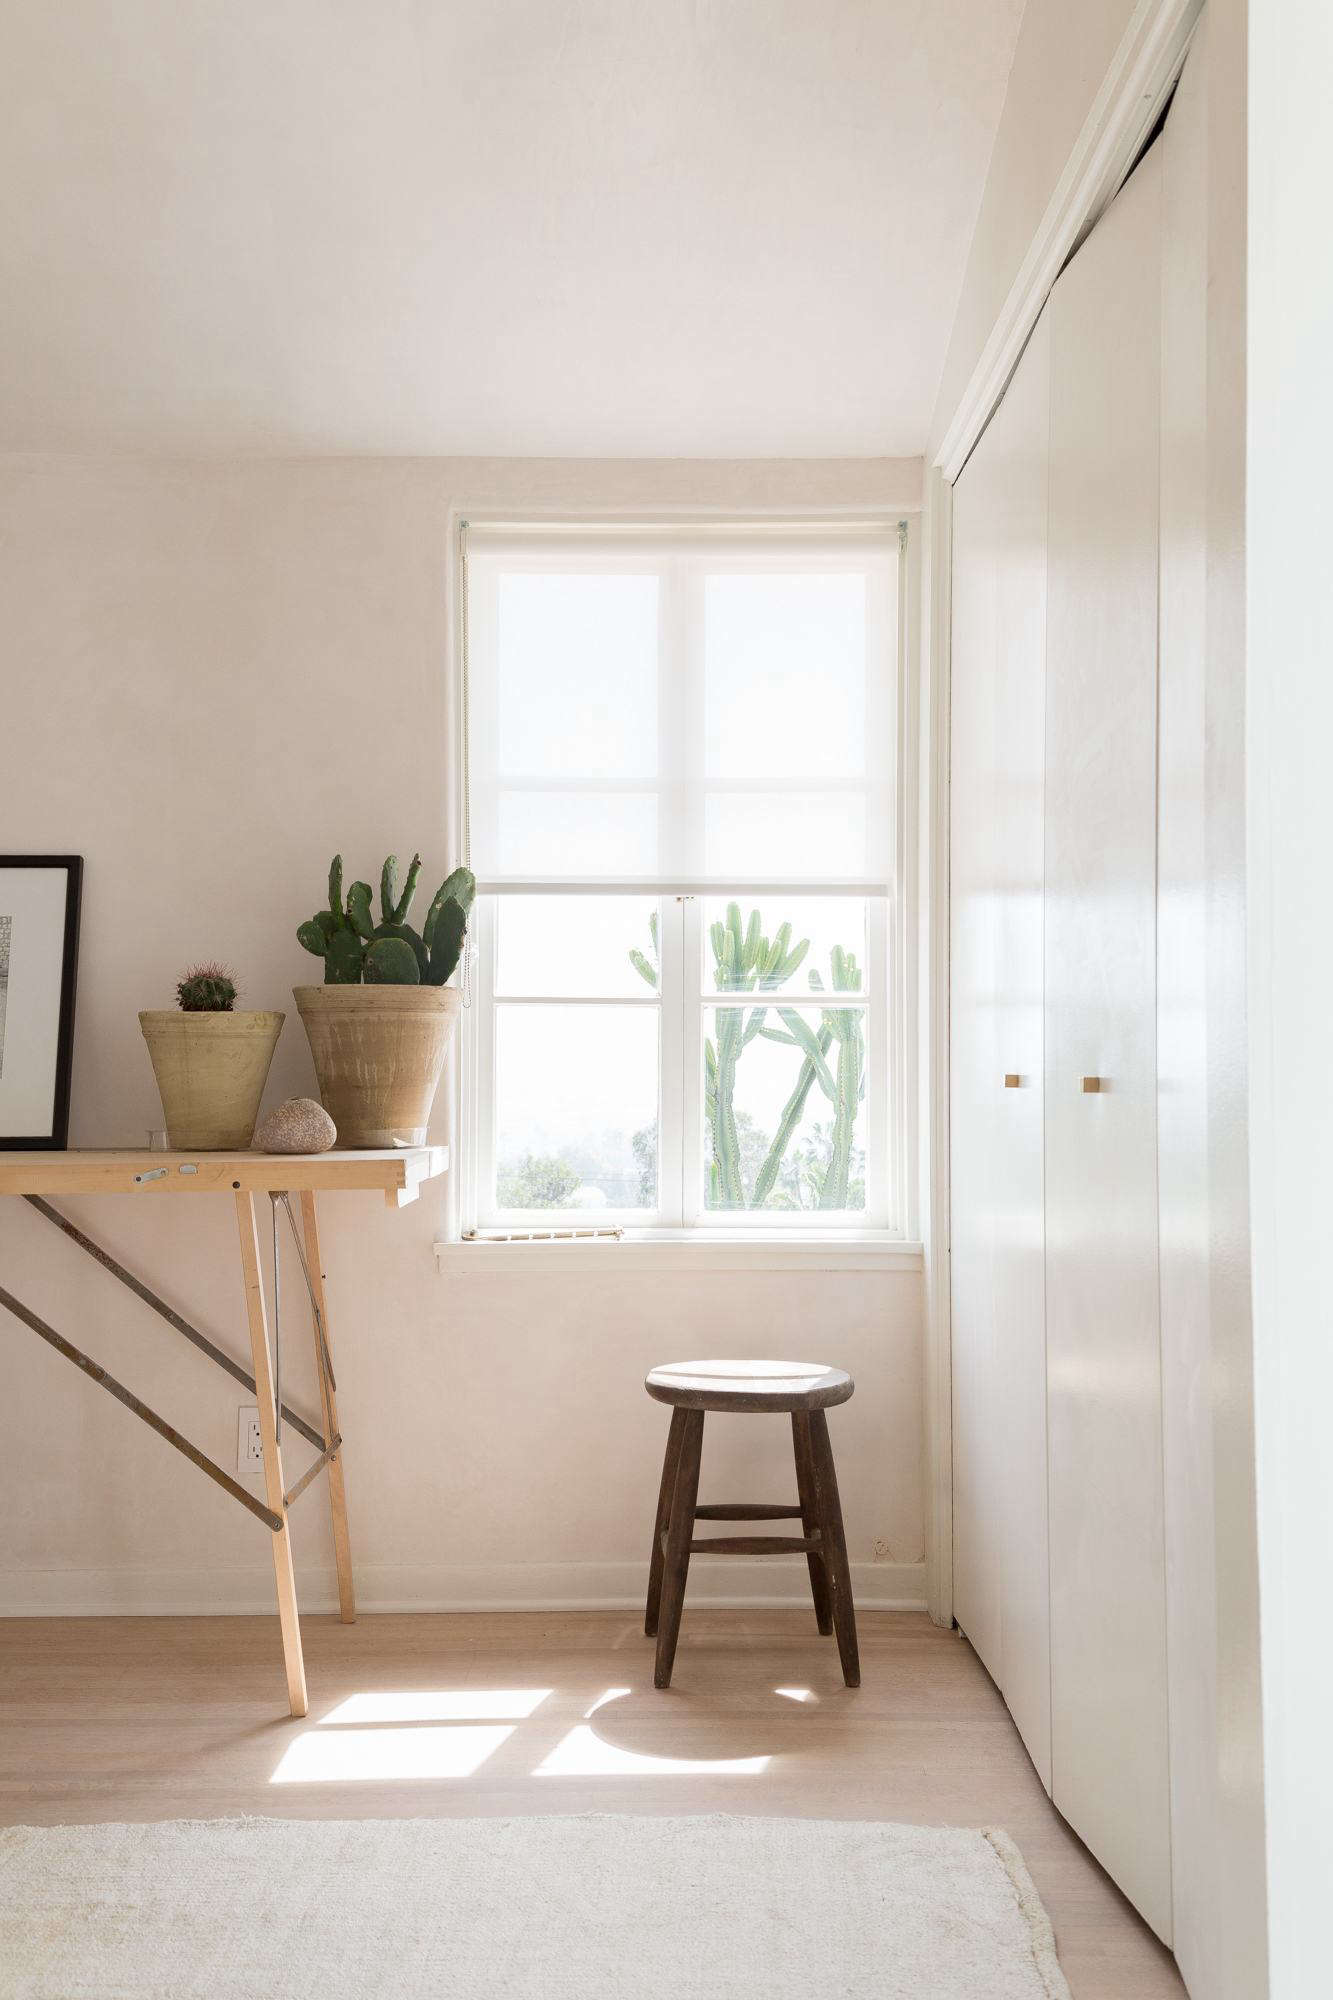 Photograph by Lauren Moore from At Home with an LA Costume Designer, Summer Remodel Edition.